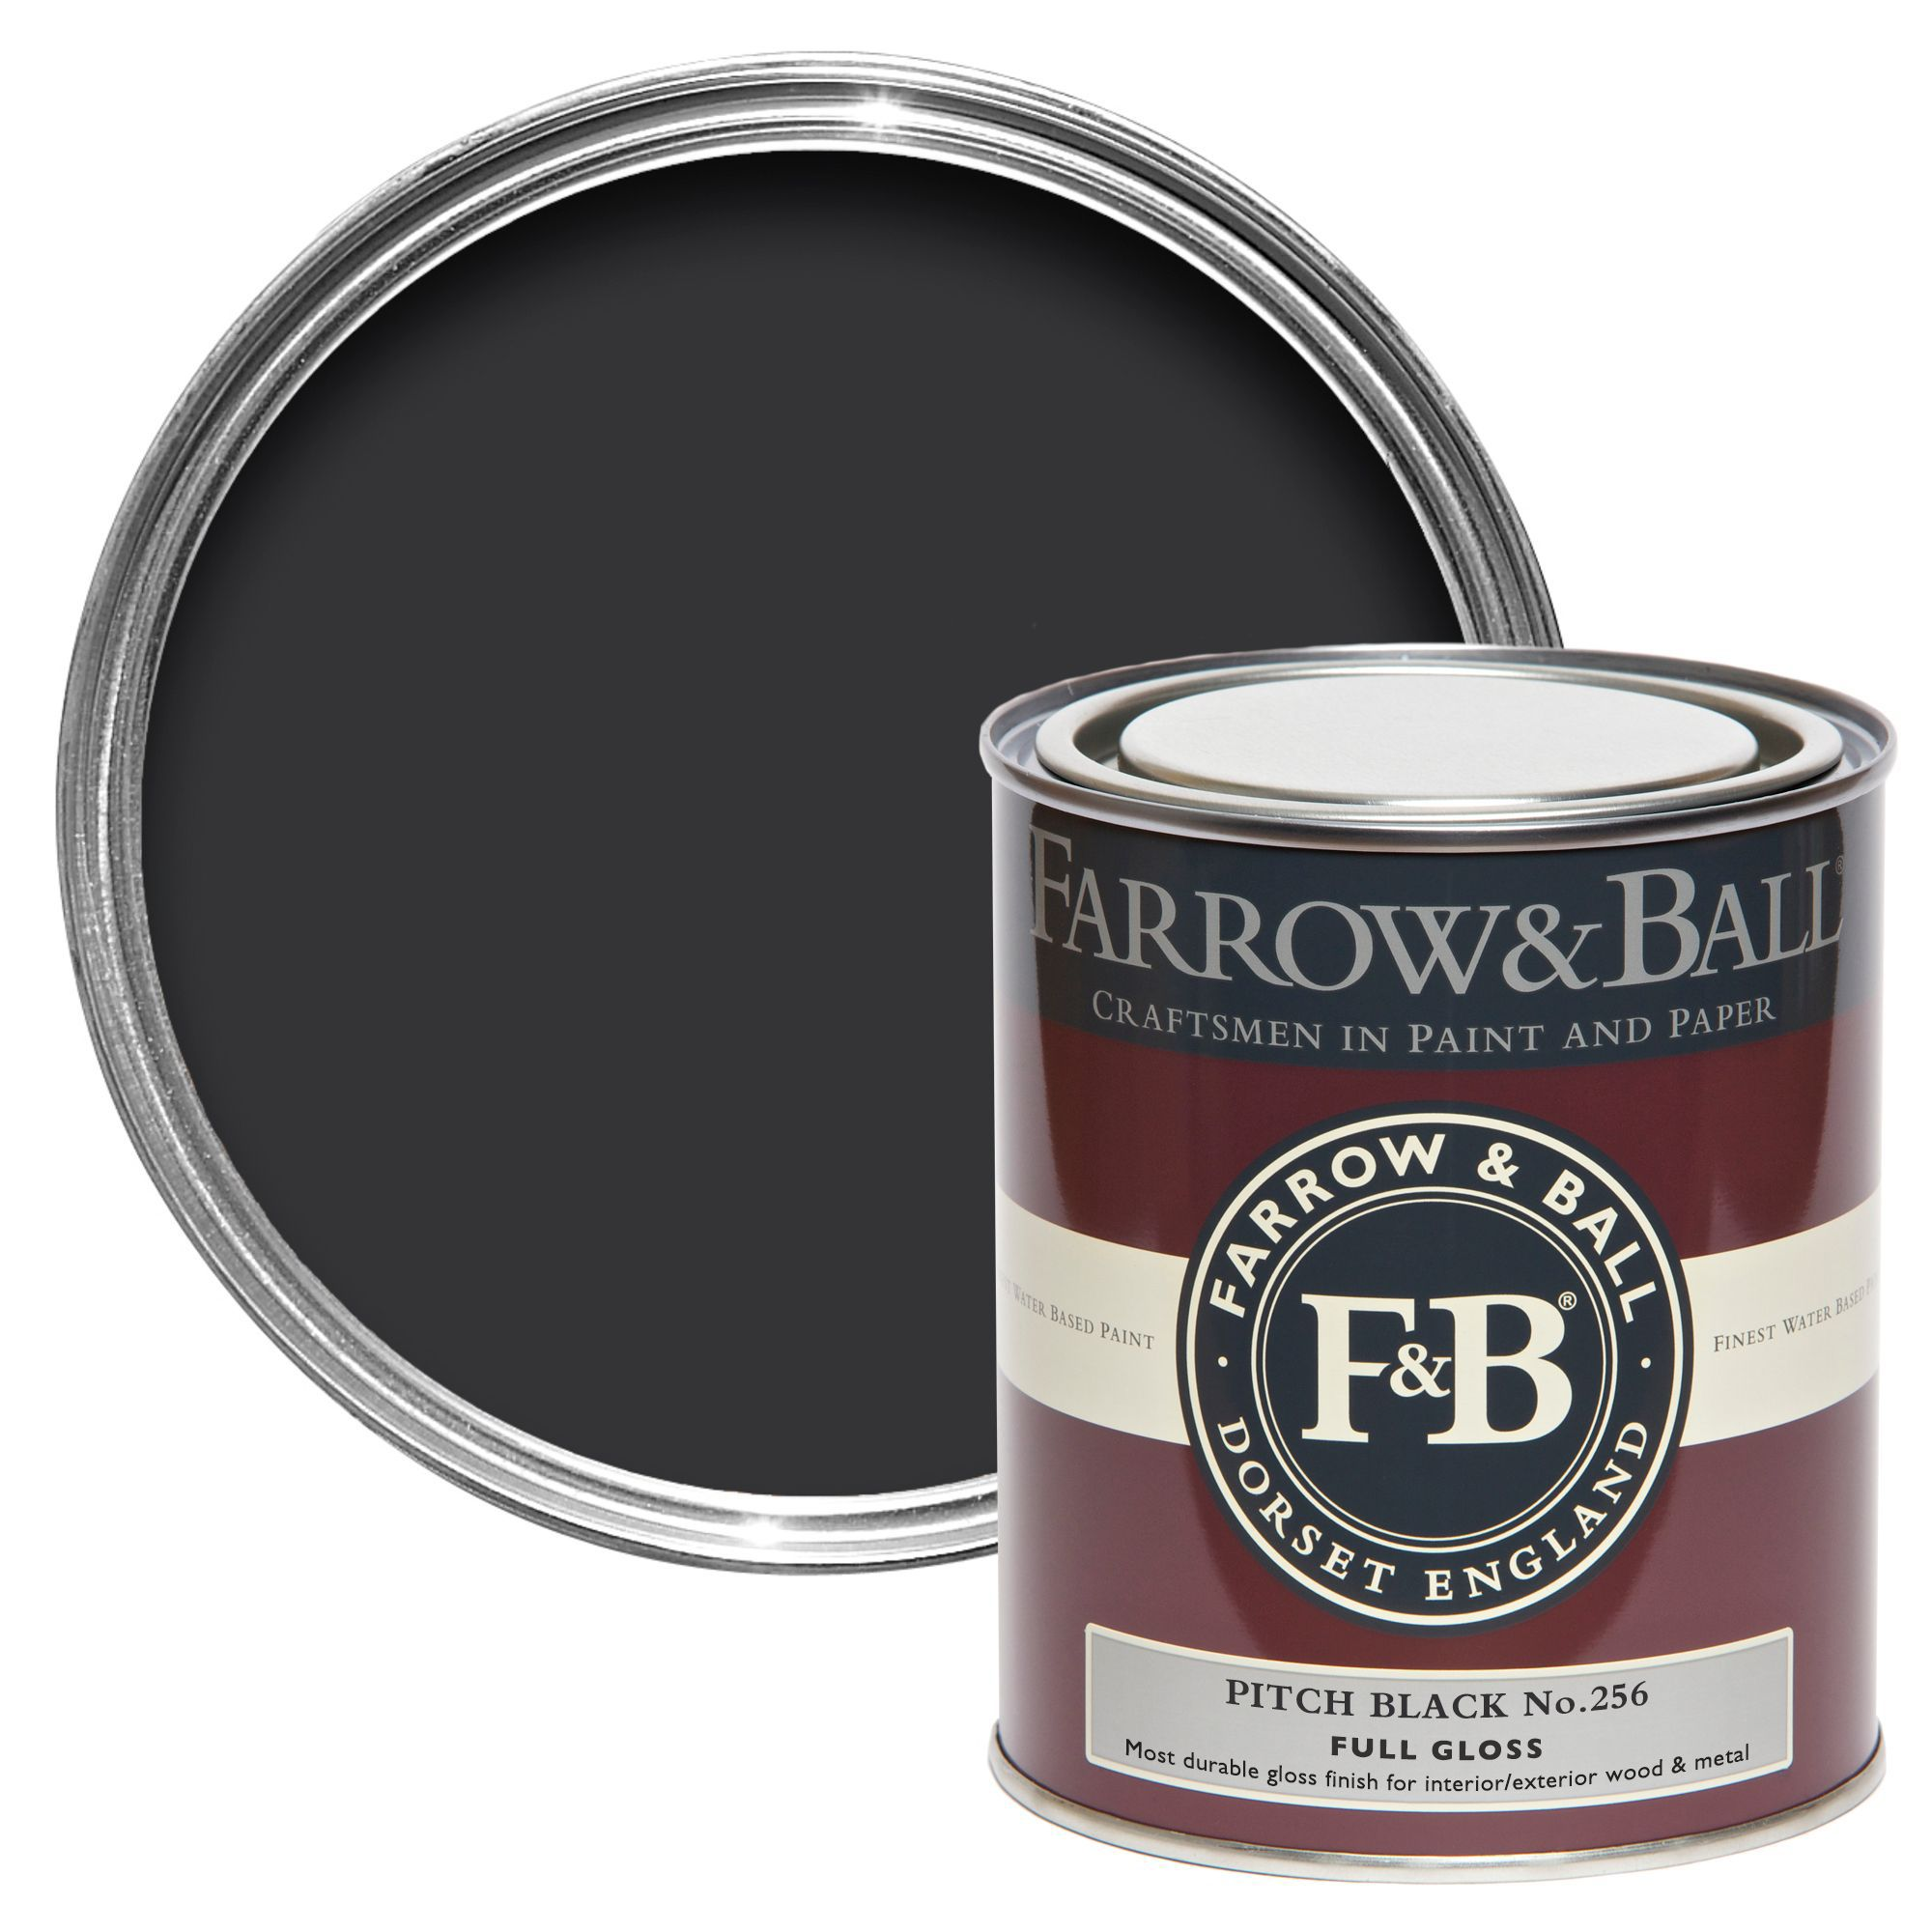 Farrow Ball Interior Exterior Pitch Black Gloss Paint 750ml Departments Diy At B Q